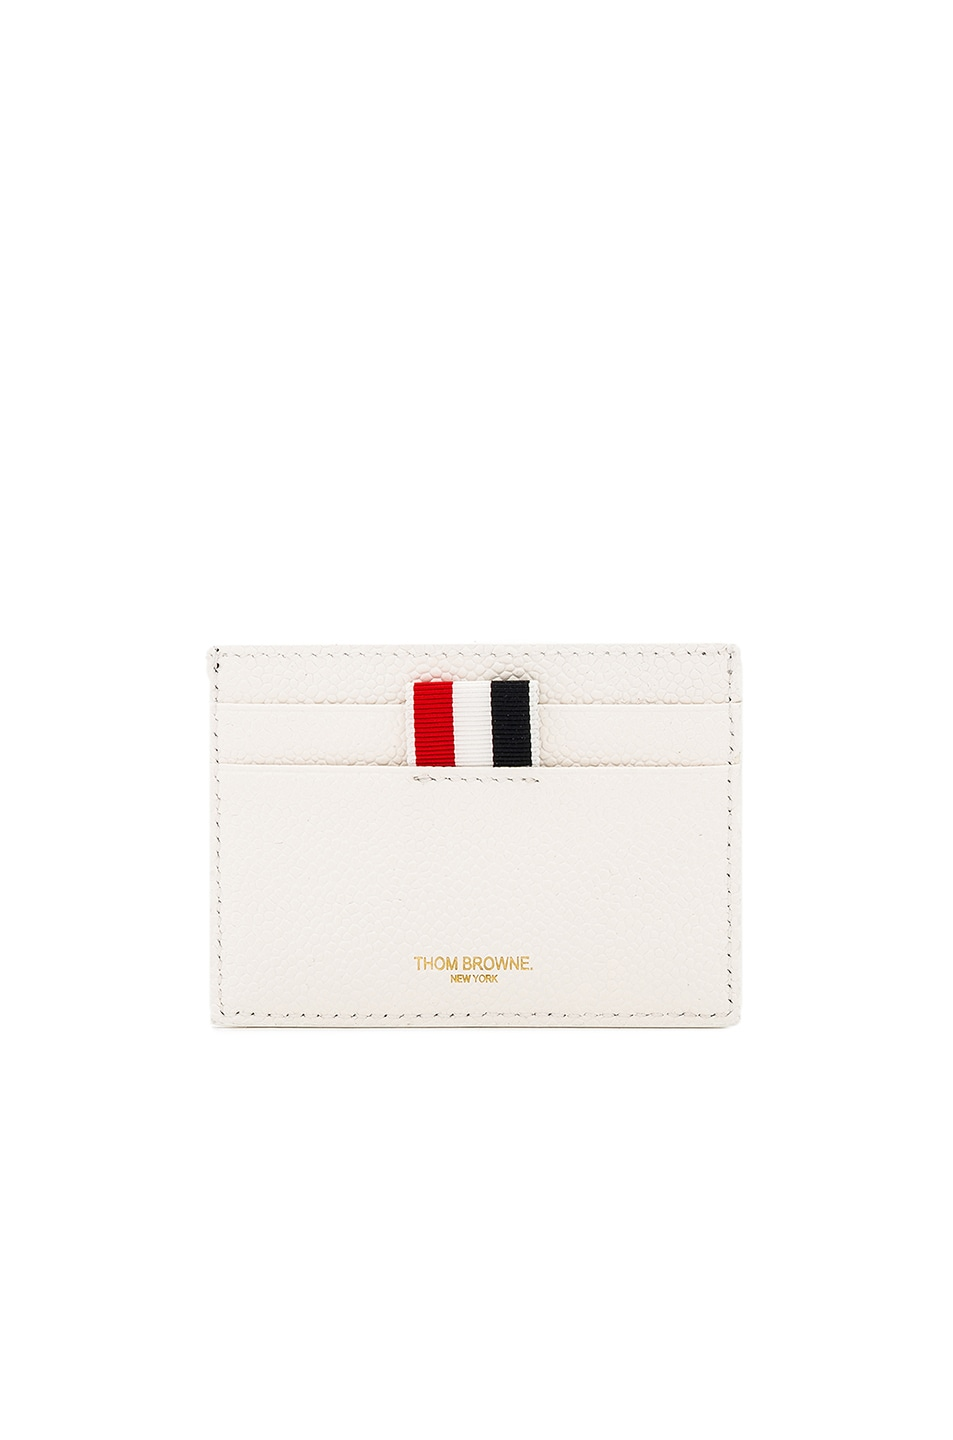 797d636079 Image 1 of Thom Browne Pebble Grain & Calf Leather Tennis Racket Card Holder  in Navy